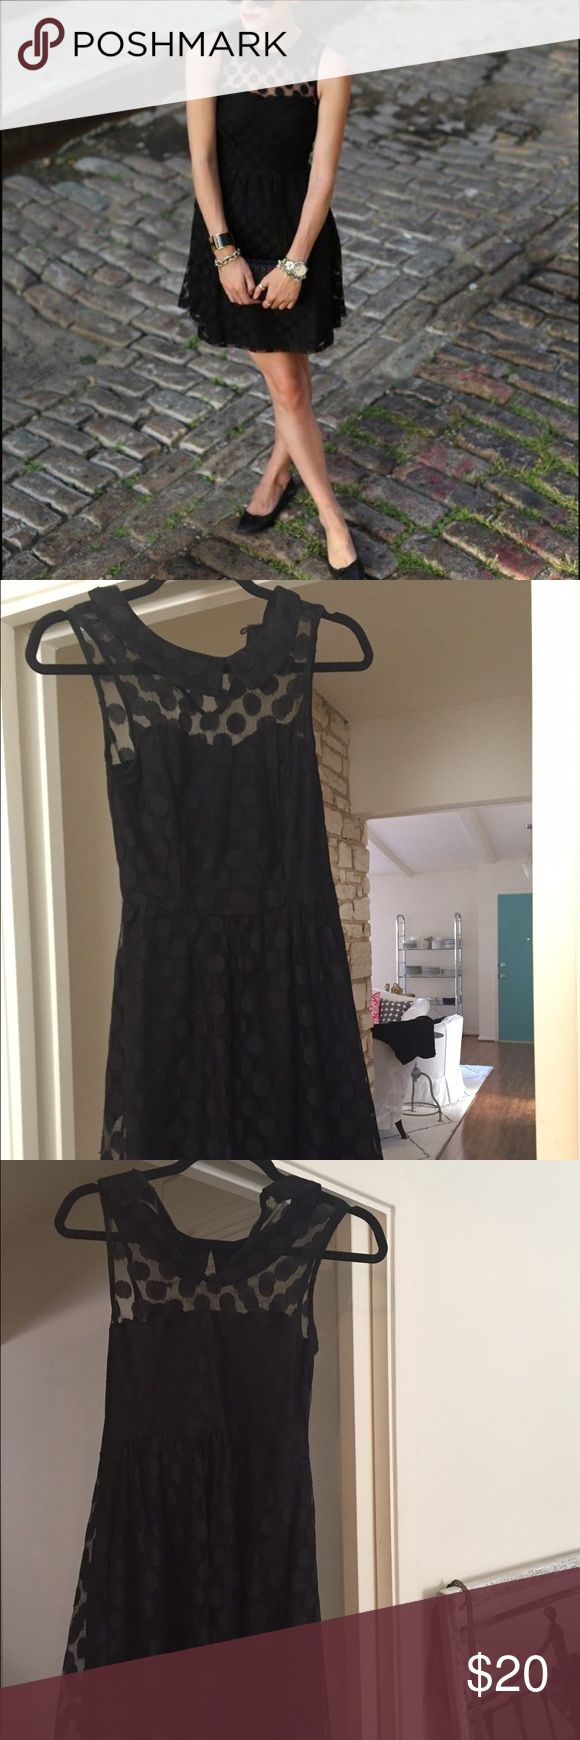 Black Polka Dot Cocktail Dress Black polka dot cocktail dress. Barely worn, in great condition. Size small. Very flattering Xhilaration Dresses